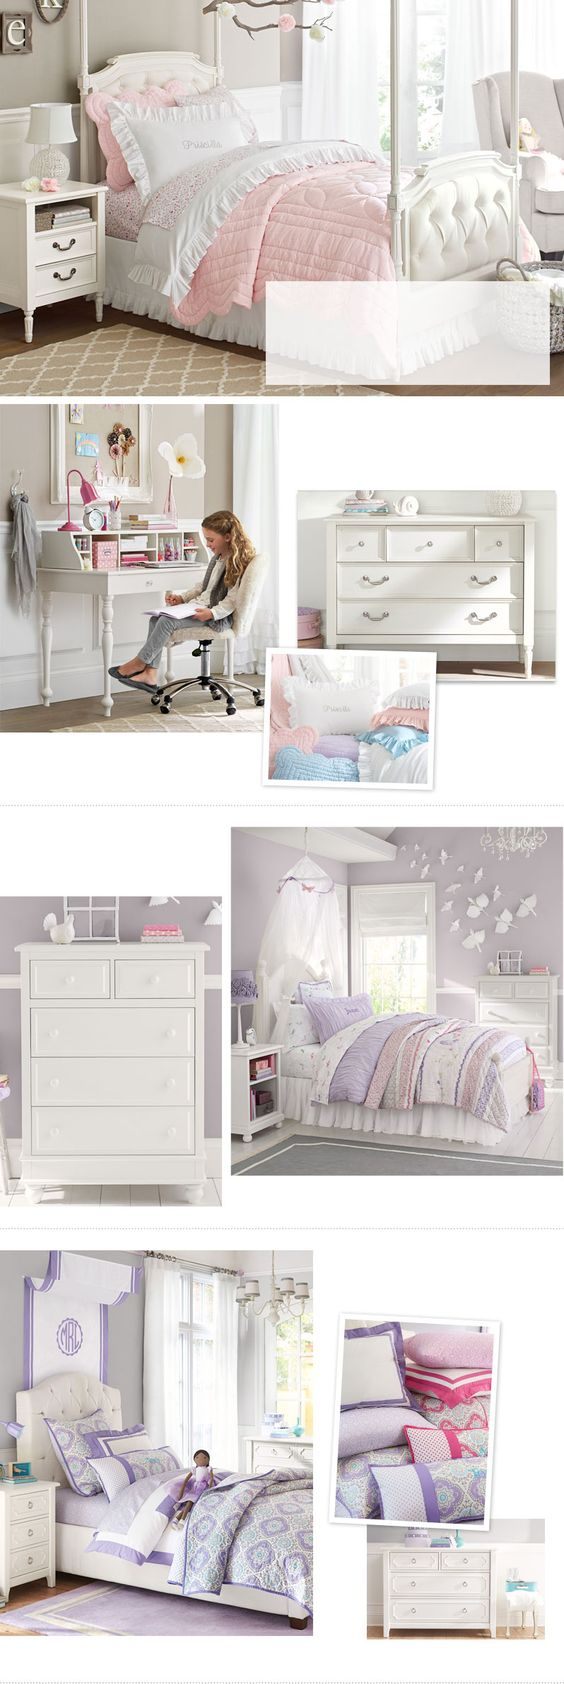 Girls Bedroom Ideas & Girls Room Ideas | Pottery Barn Kids: